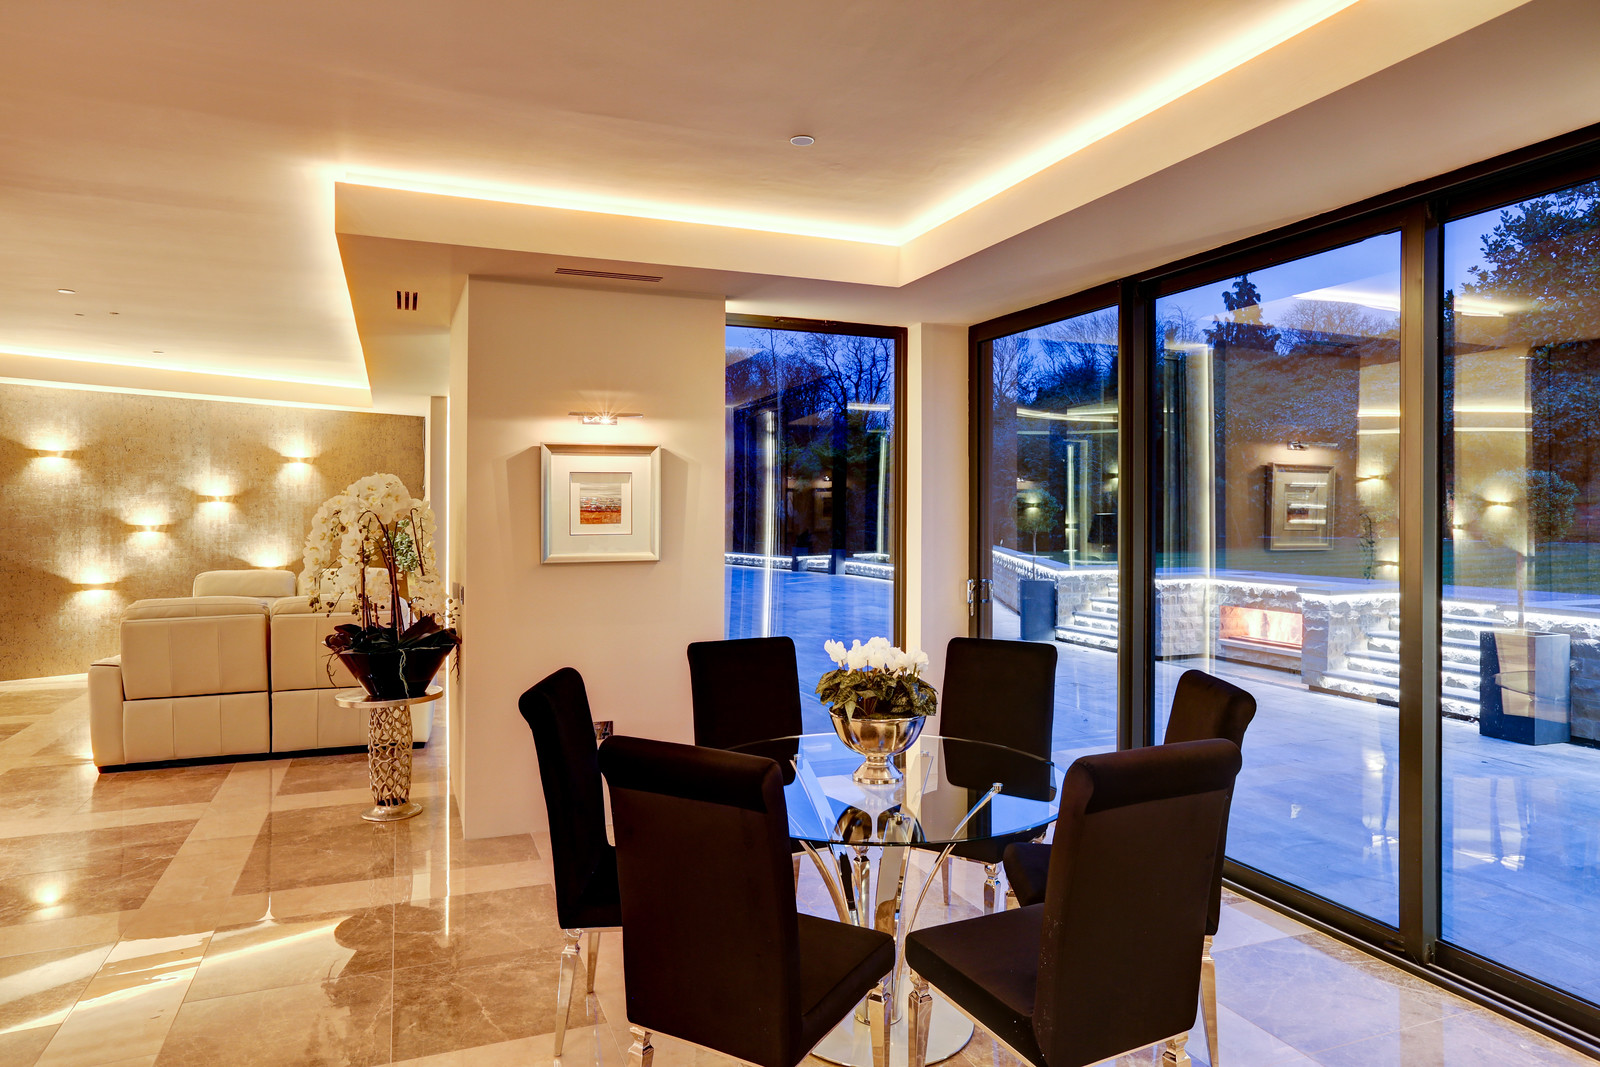 Luxury home, dining space onto courtyard. Tanglewood. Colston Bassett